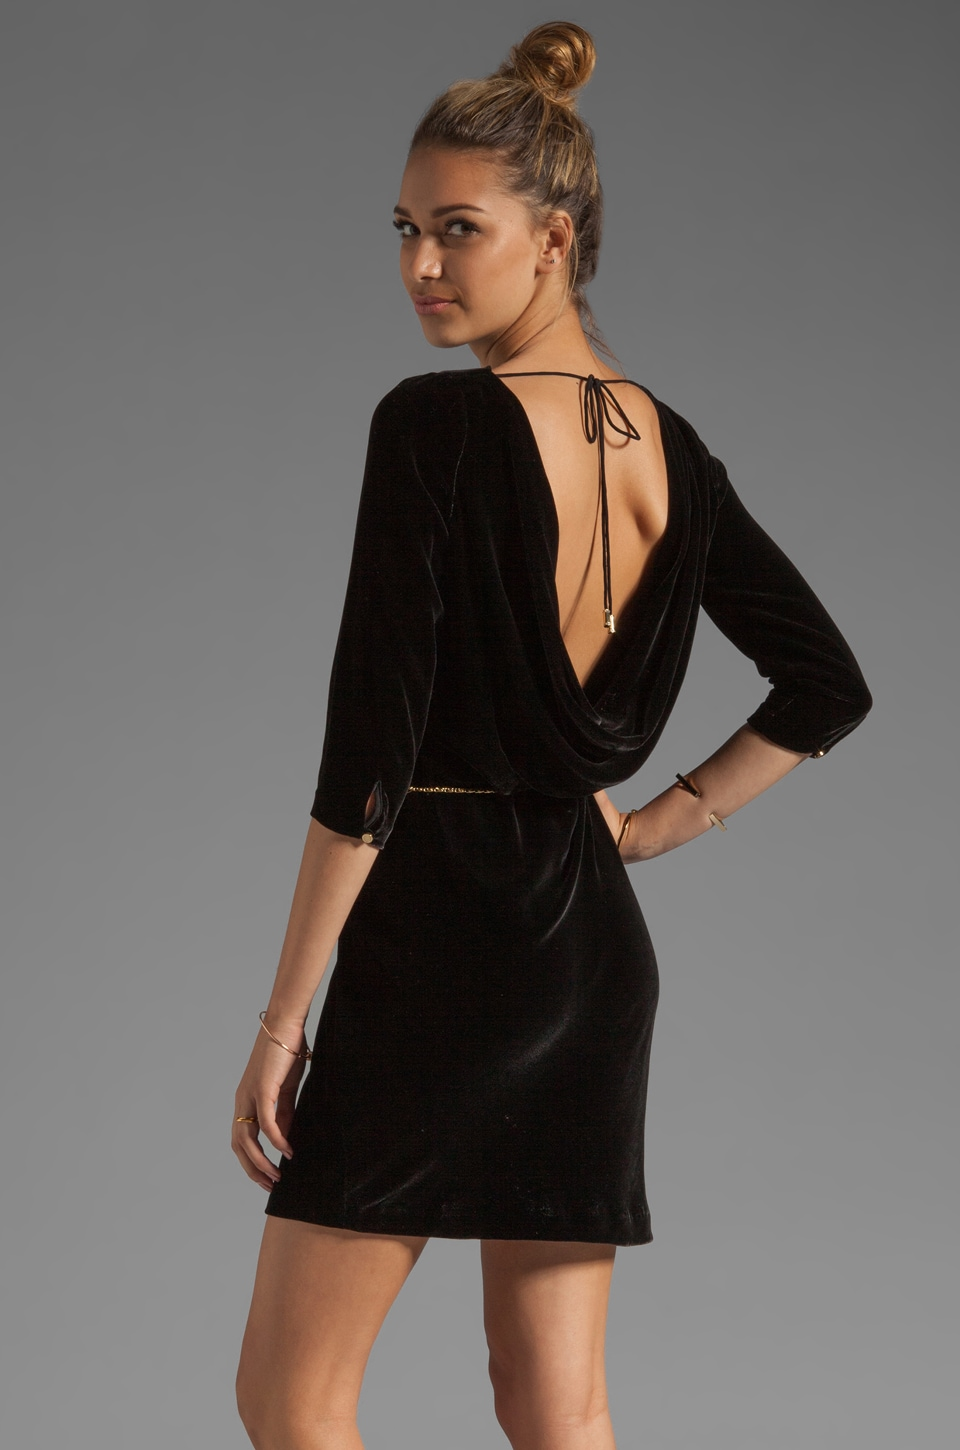 Juicy Couture Velvet Cowl Back Dress in Pitch Black